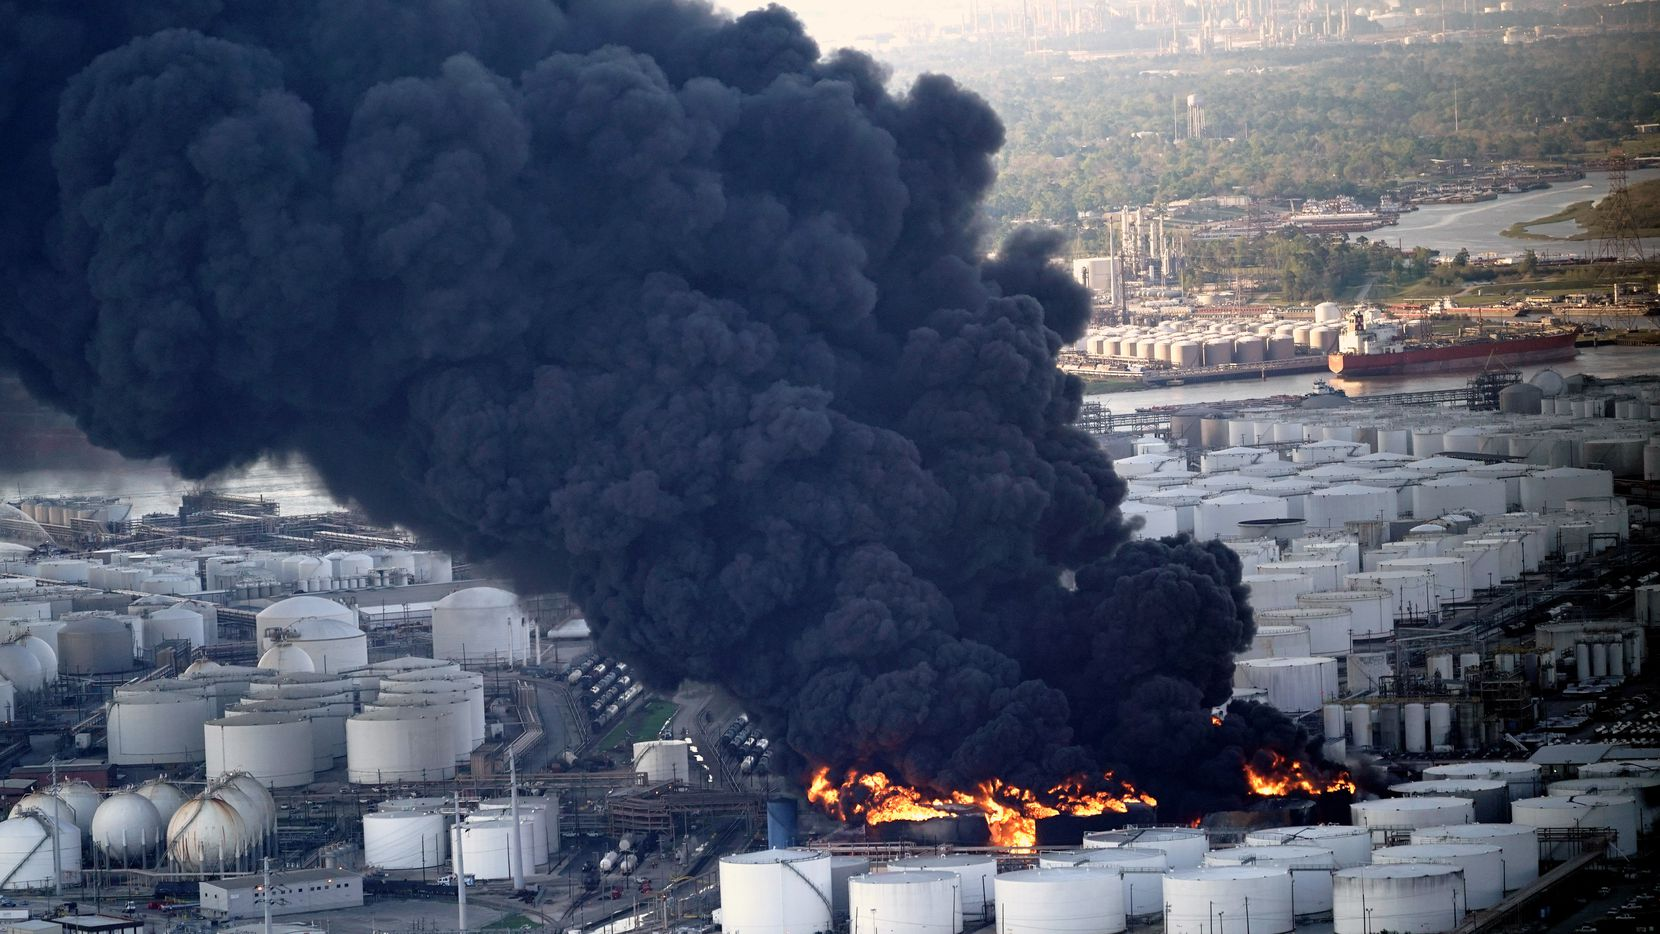 A plume of smoke rises from a petrochemical fire at the Intercontinental Terminals Co. on March 18 in Deer Park.